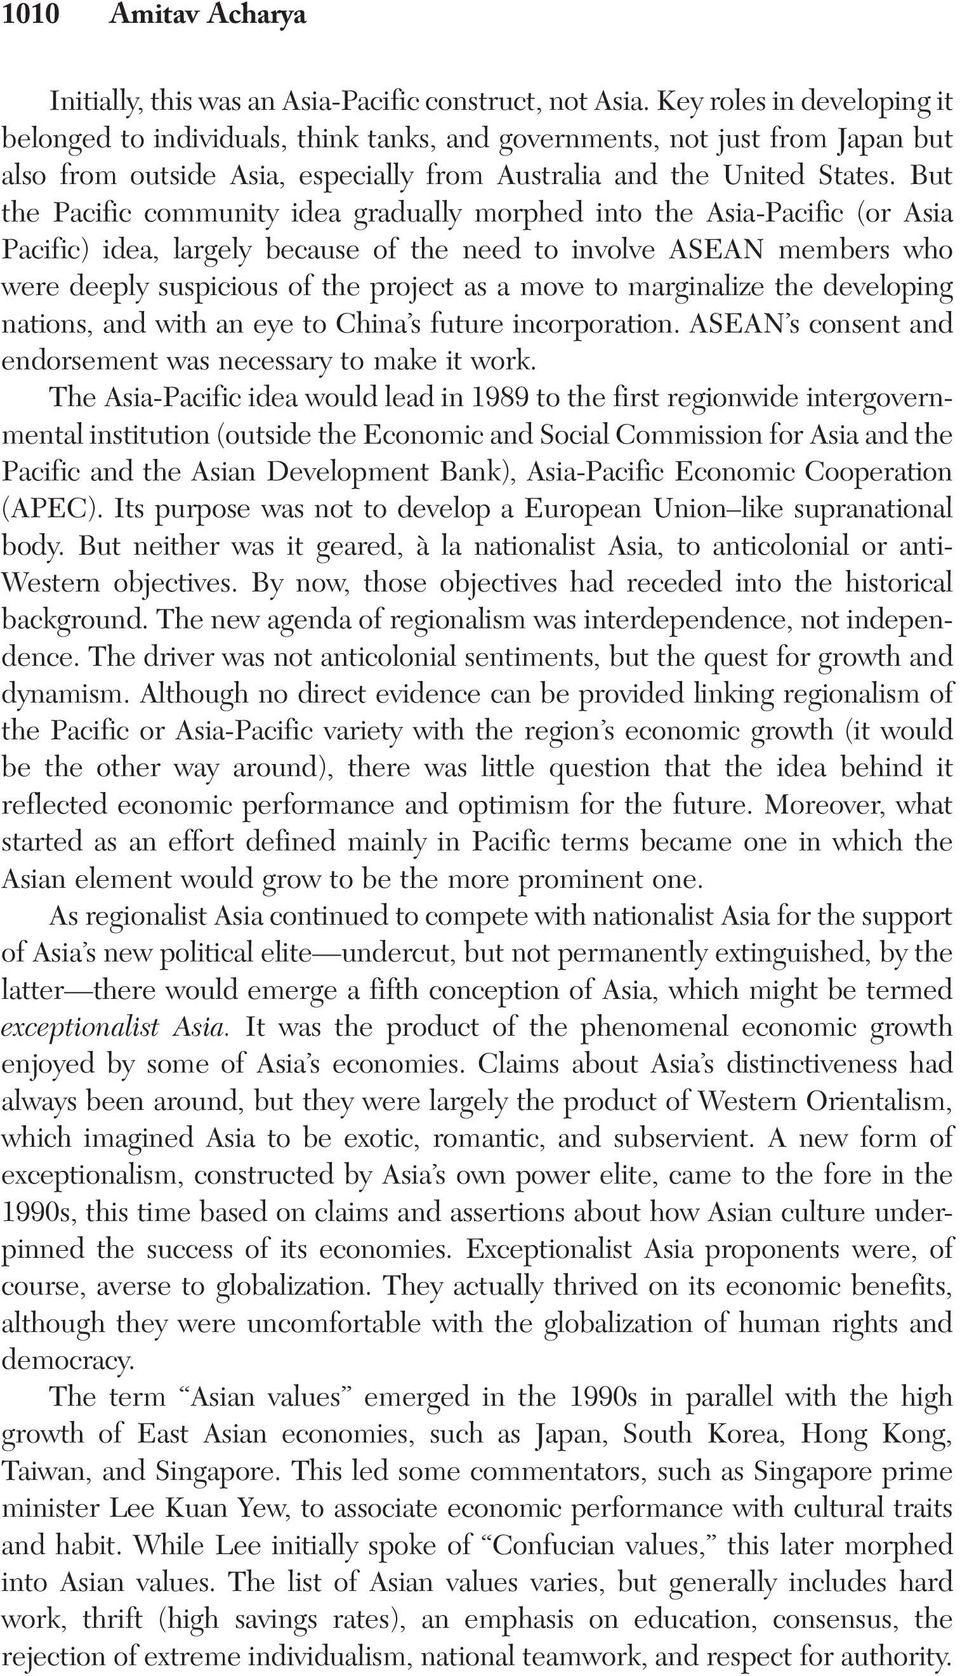 But the Pacific community idea gradually morphed into the Asia-Pacific (or Asia Pacific) idea, largely because of the need to involve ASEAN members who were deeply suspicious of the project as a move